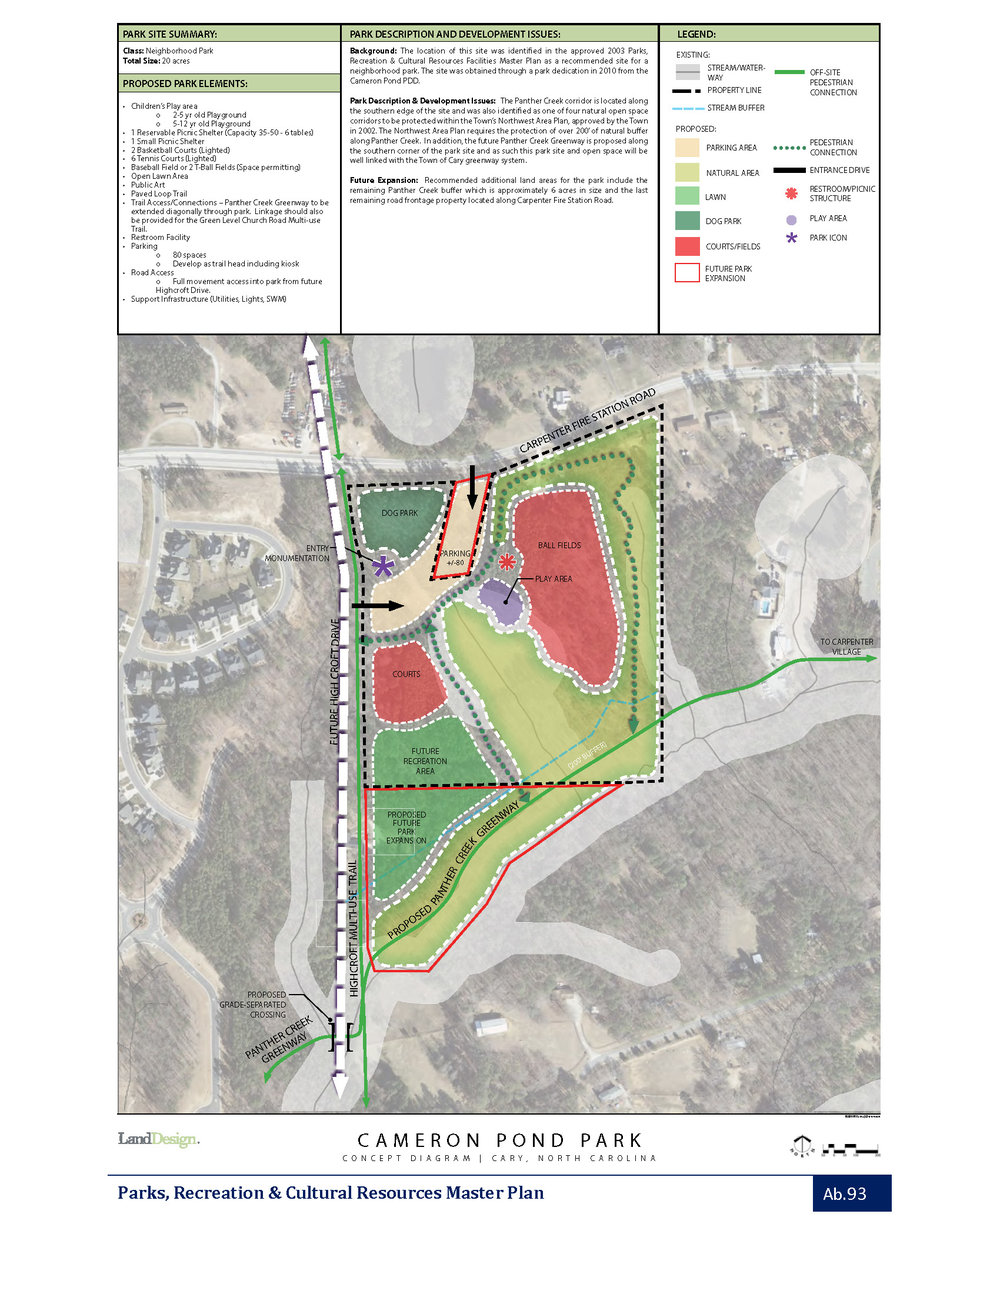 Town of Cary Concept Plan from 2012